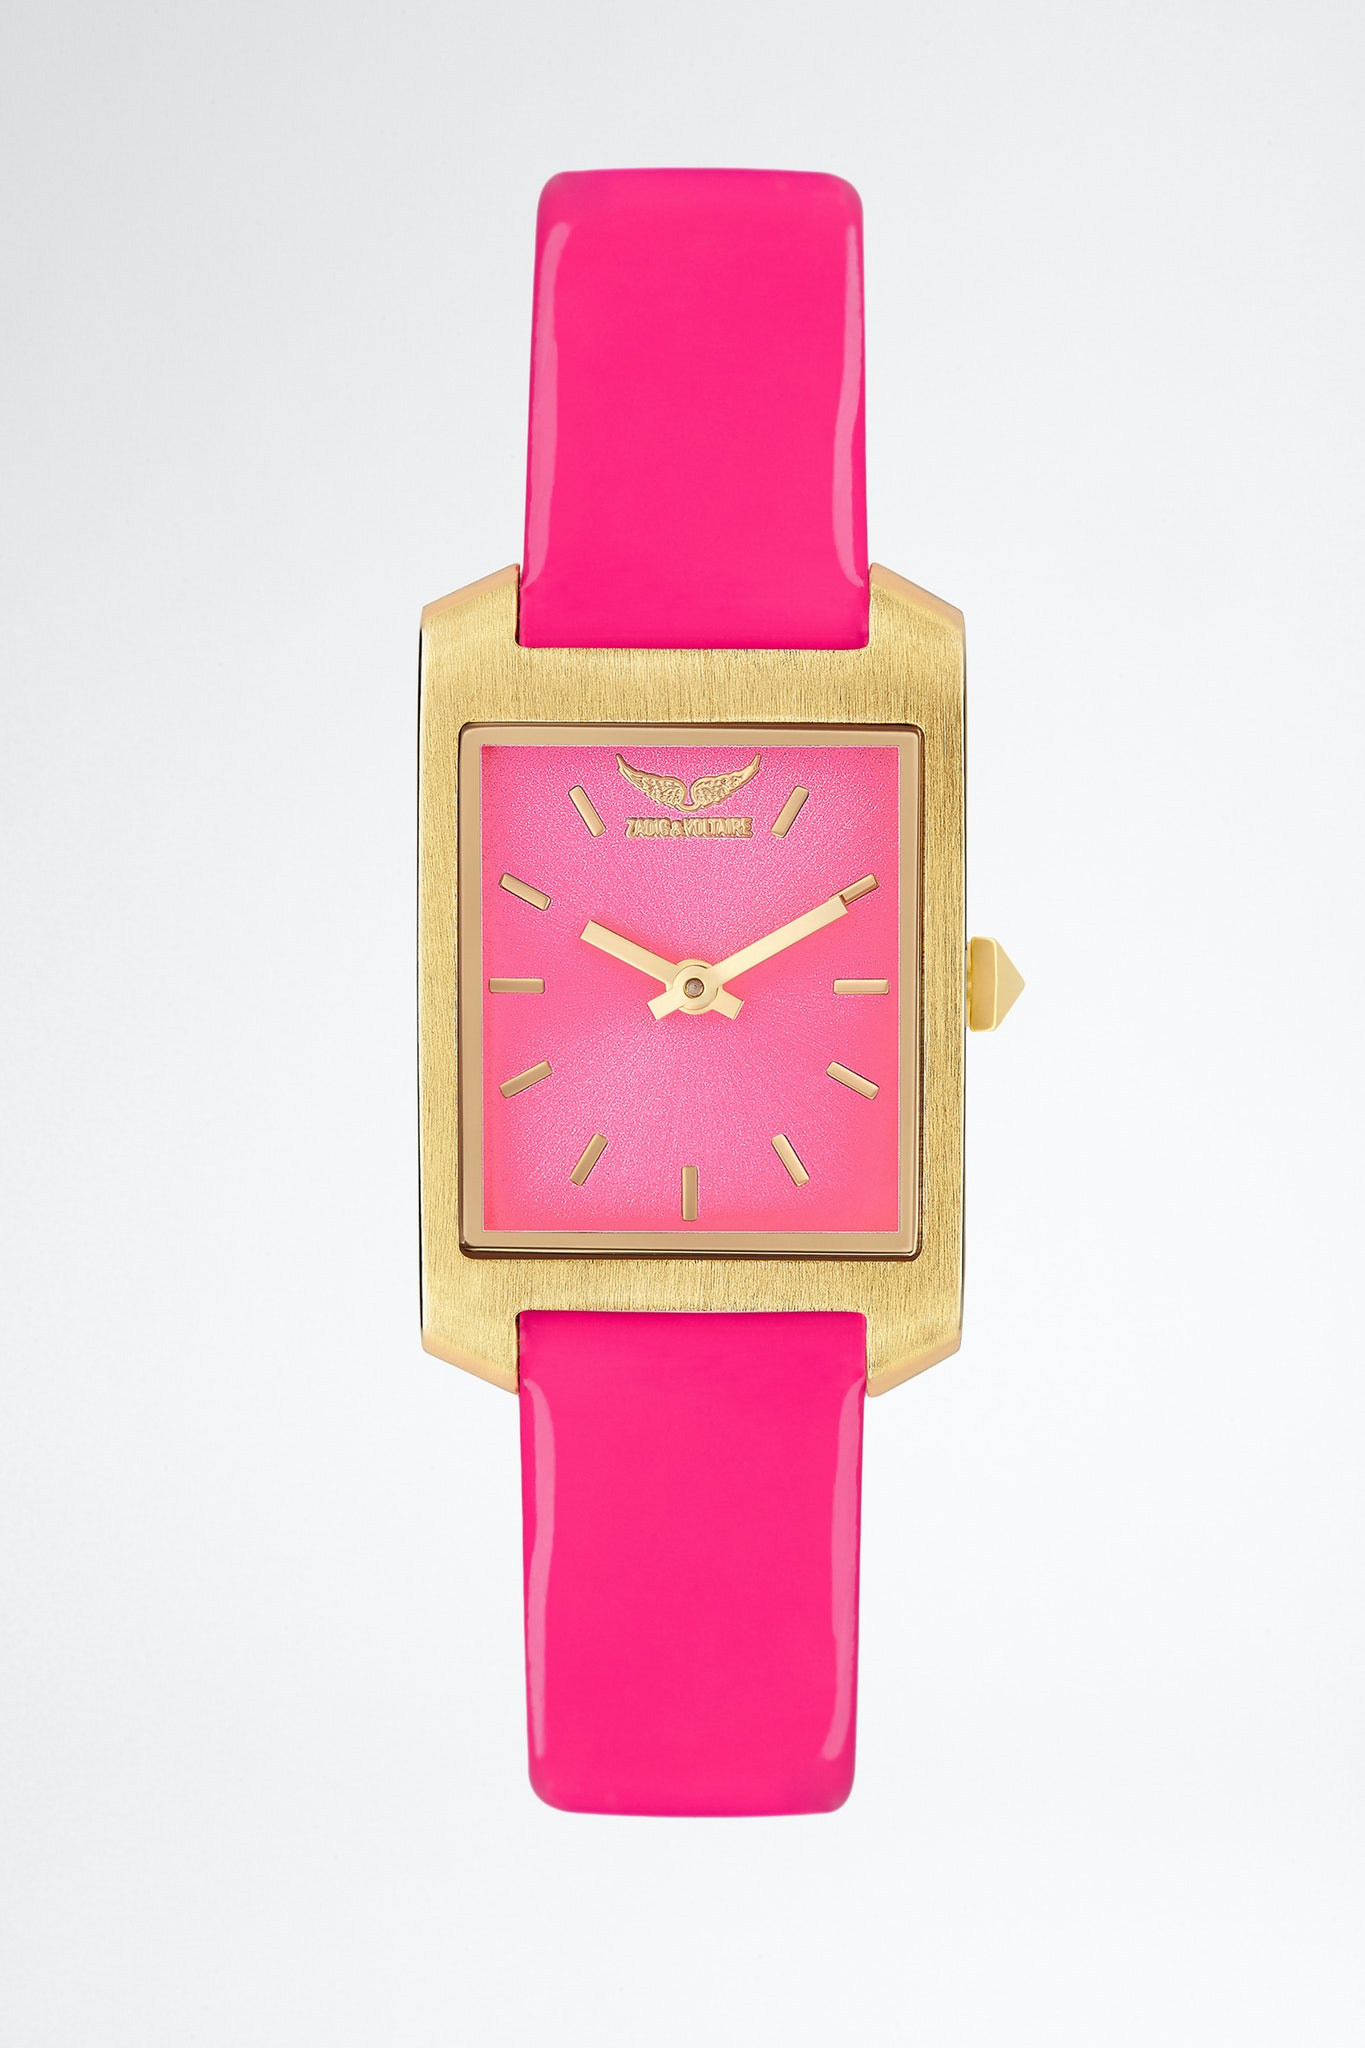 Timeline Cuir Vernis Watch